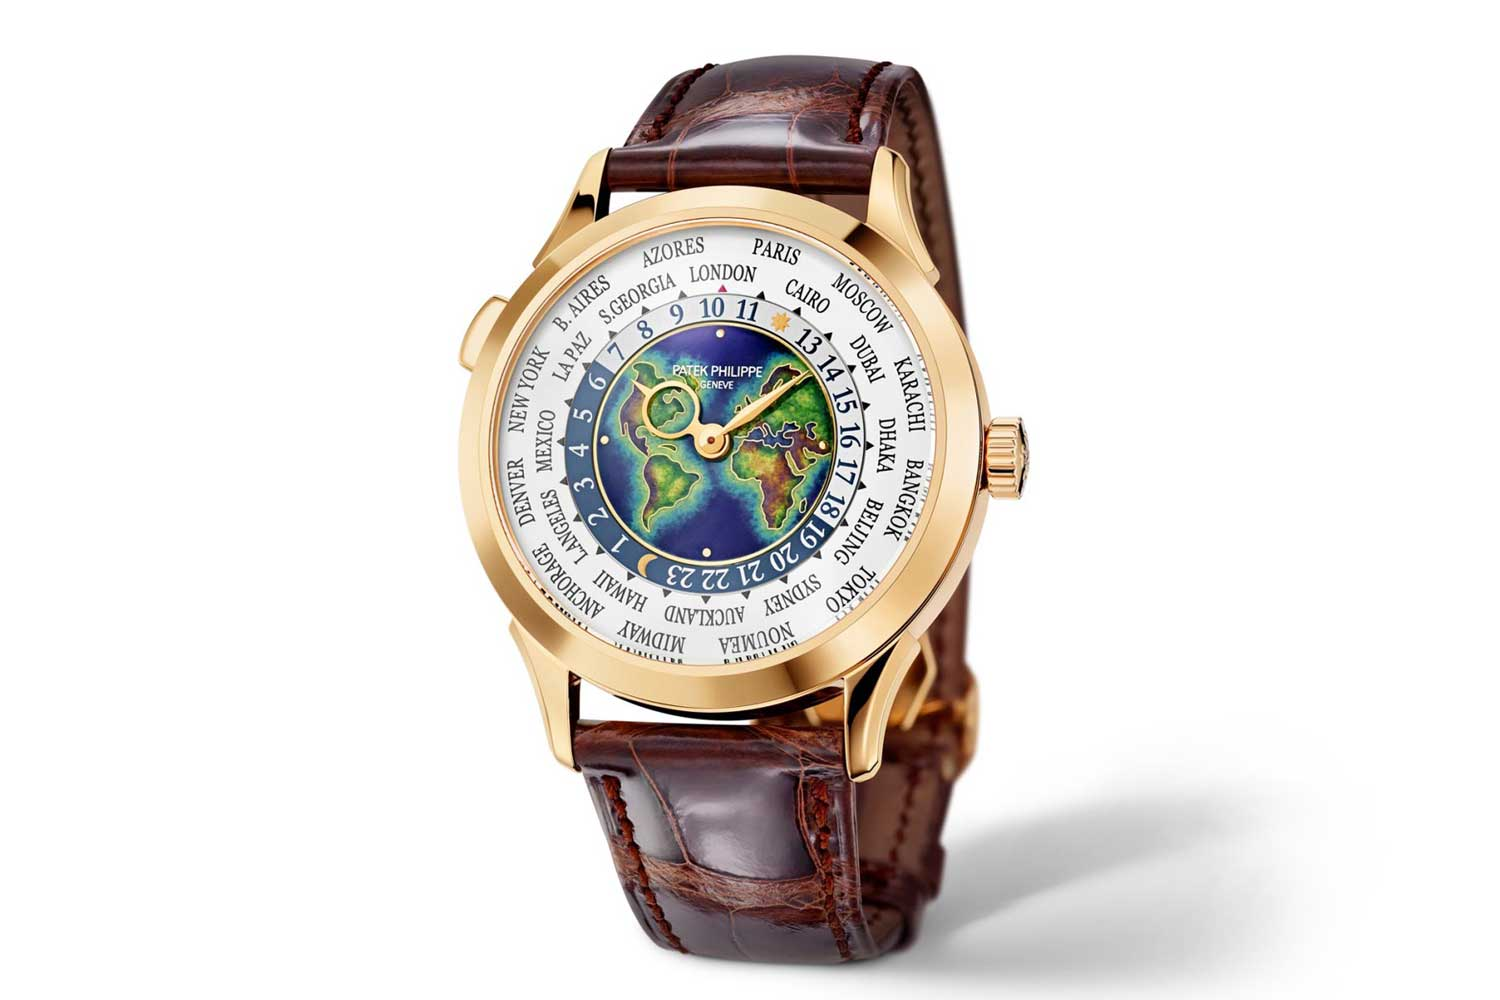 Patek Philippe Reference 5231J World Time with a cloisonné enamel world map on the dial